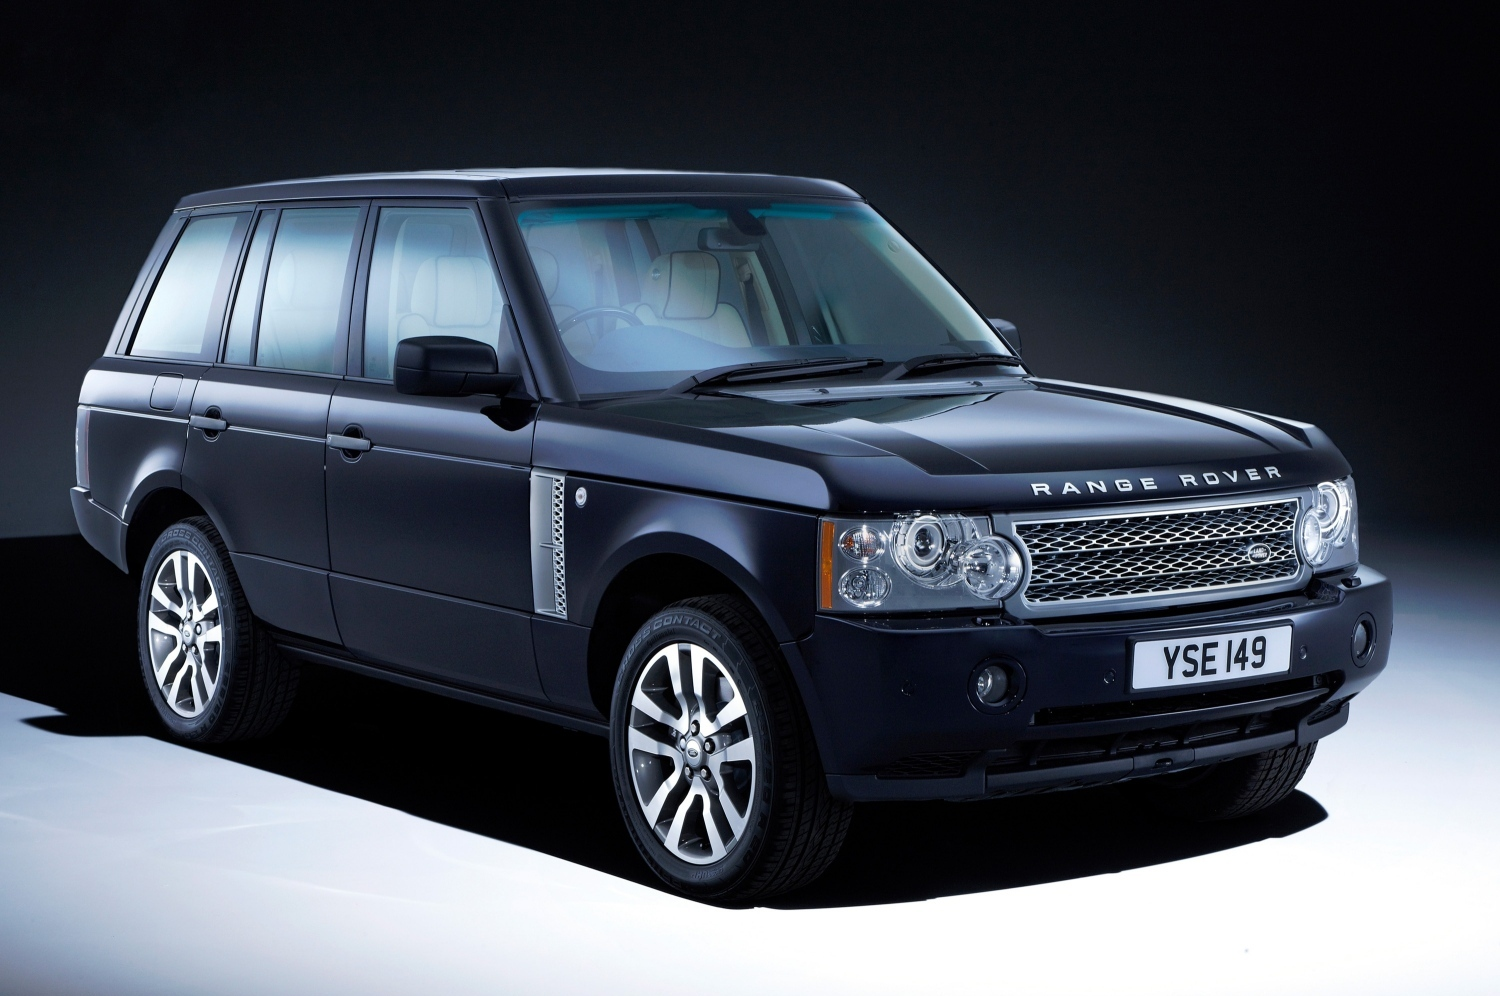 range rover westminster limited edition the land rover. Black Bedroom Furniture Sets. Home Design Ideas